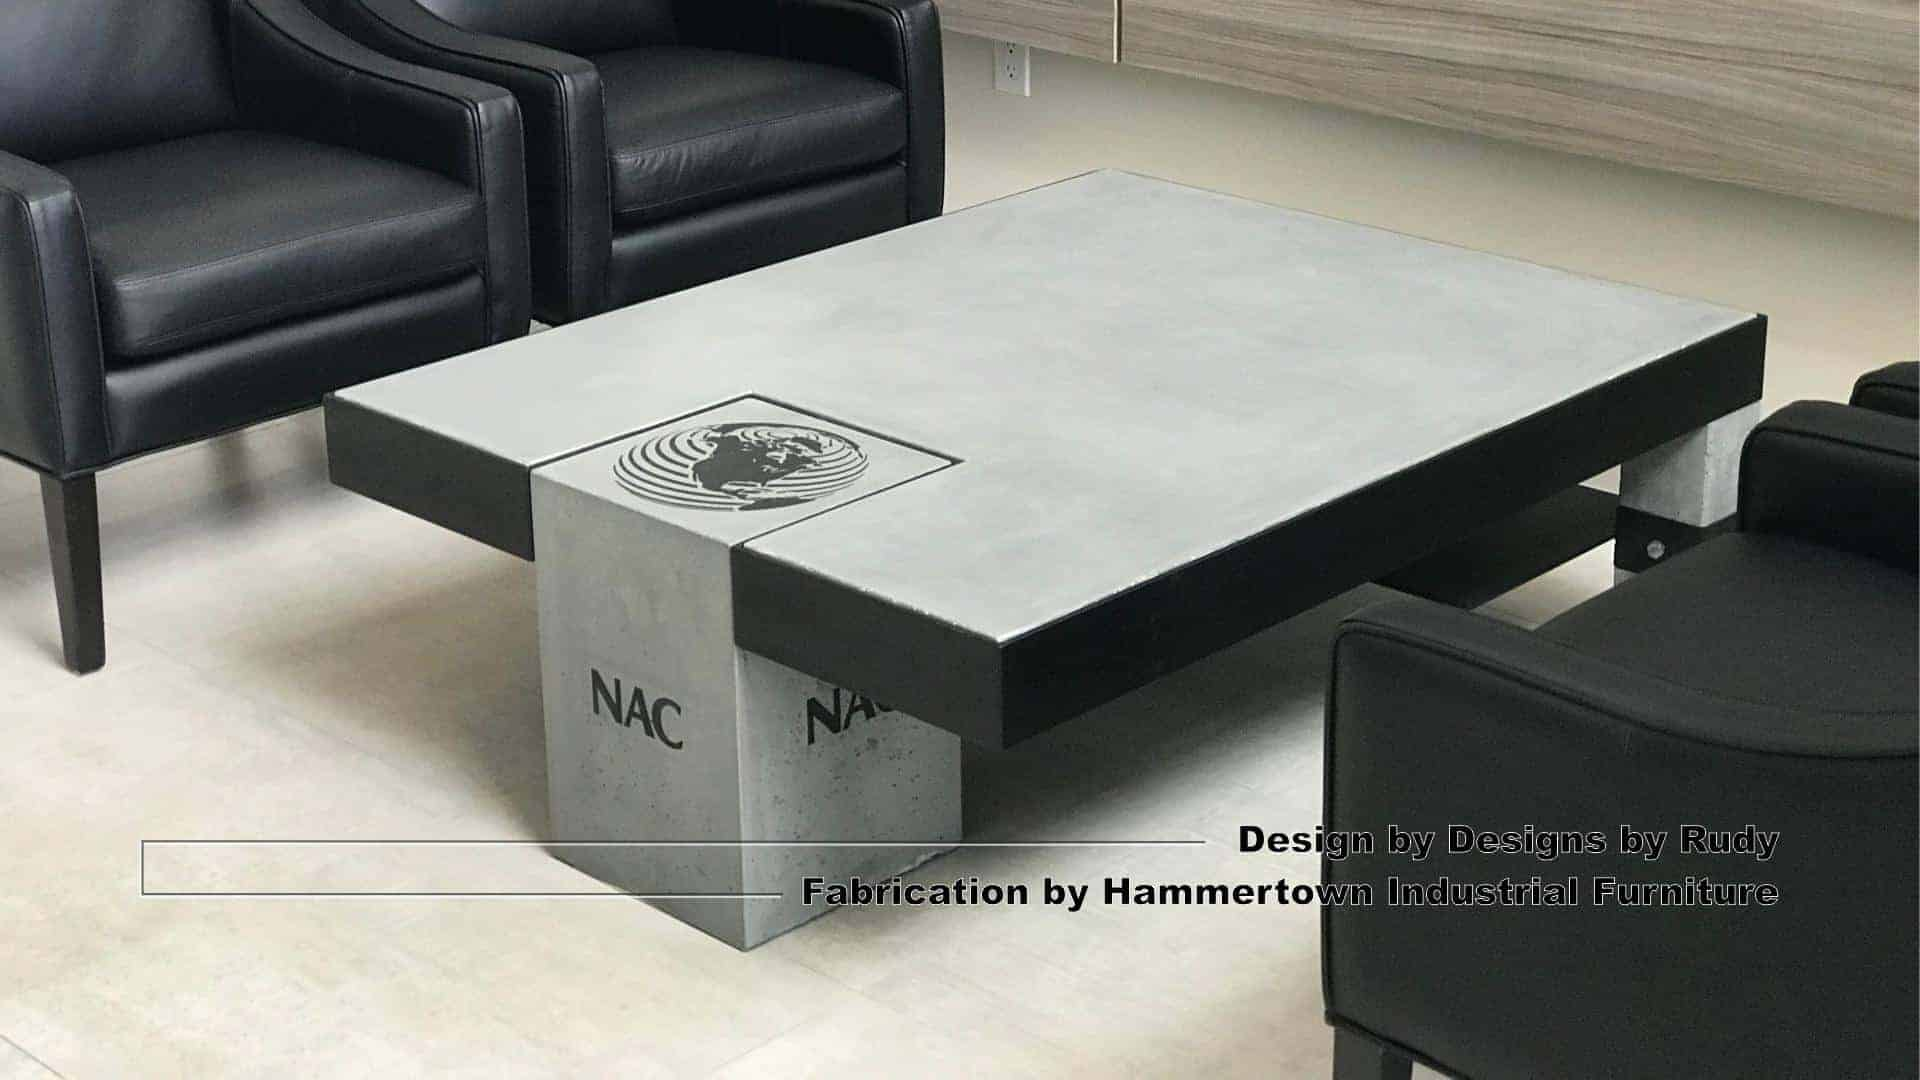 Concrete and steel coffee table for NAC, Designs by Rudy, Hammertown Industrial Furniture, view 5